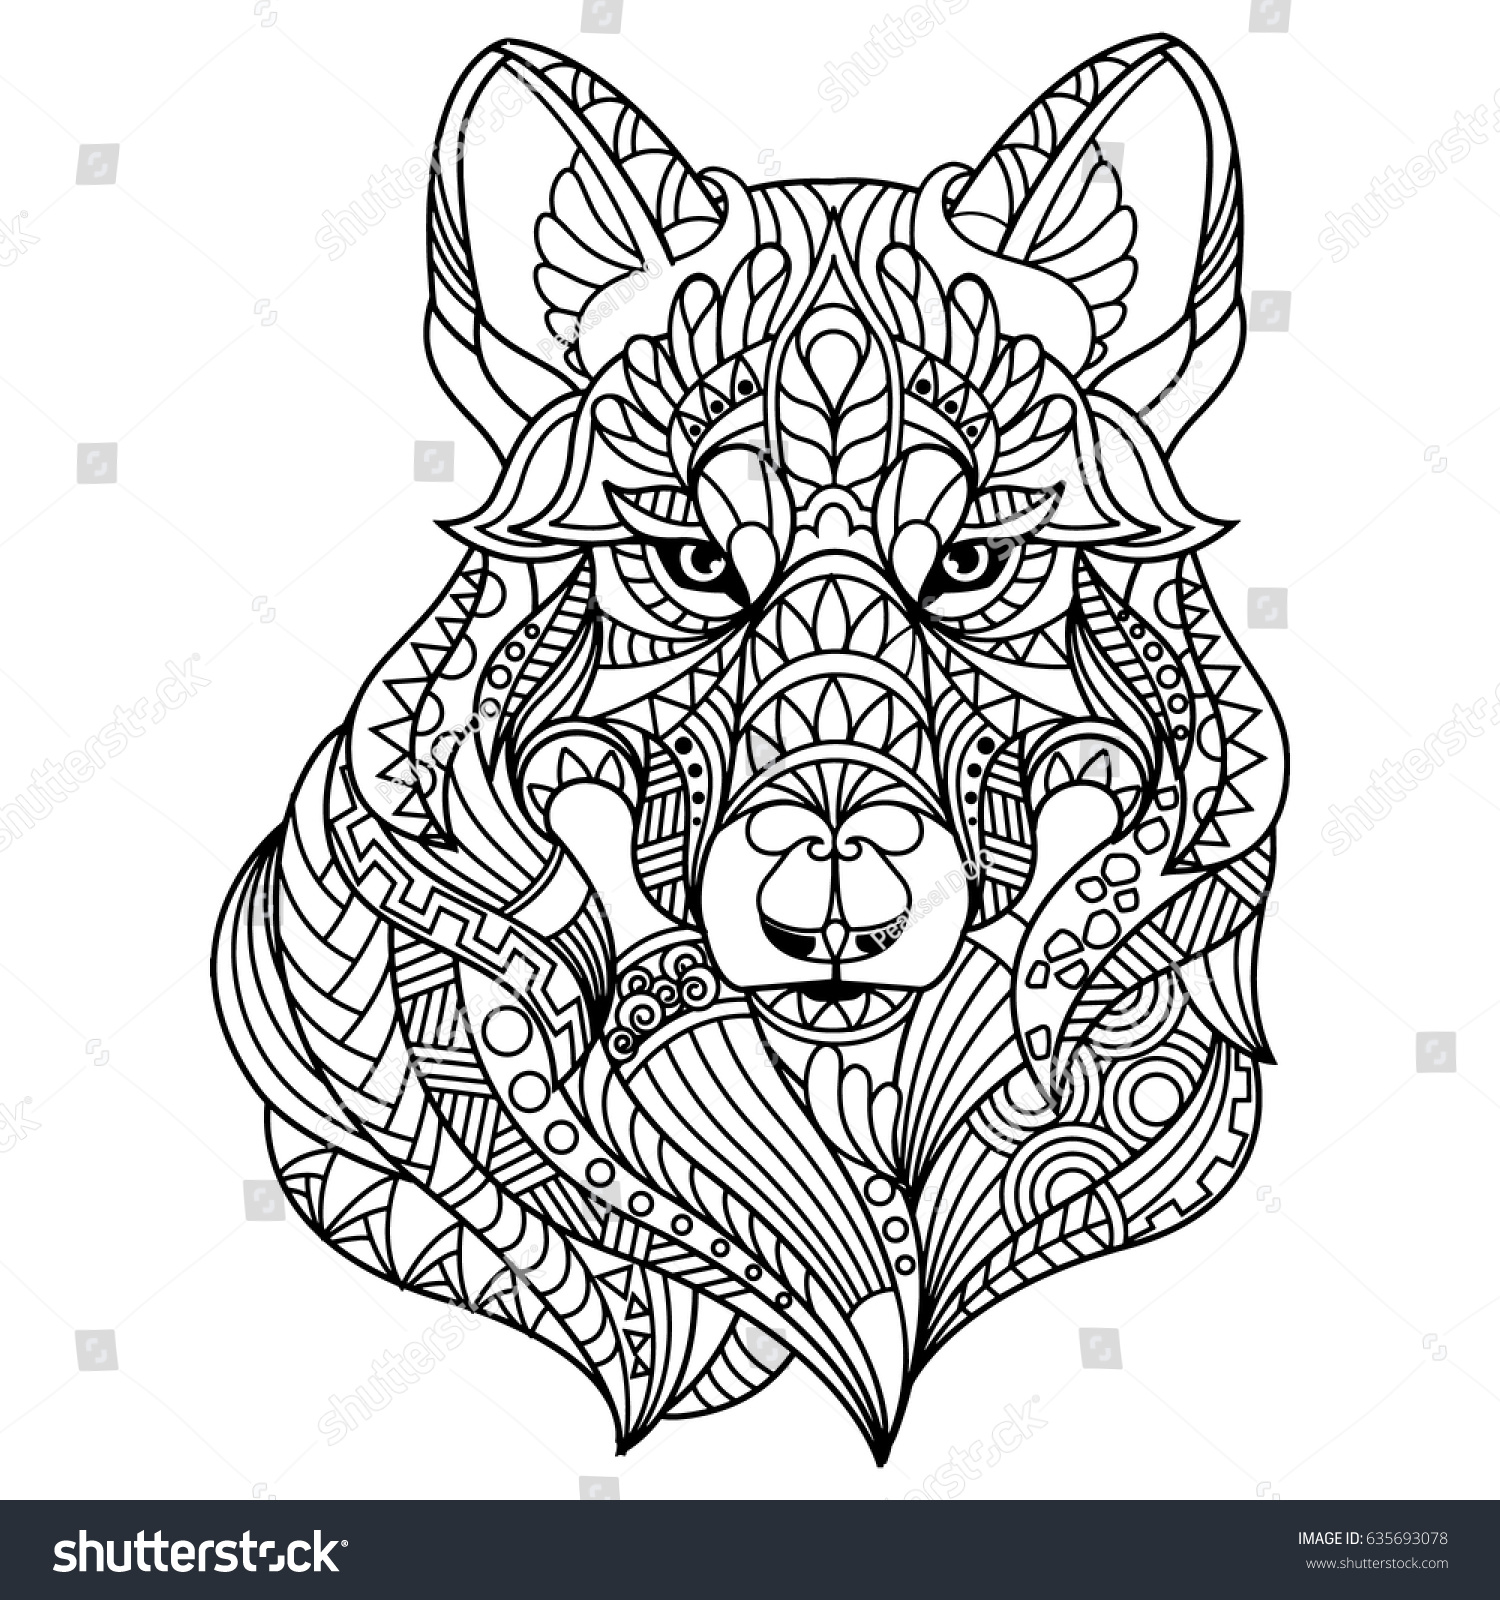 wolf coloring book for adults - Wolf Coloring Book